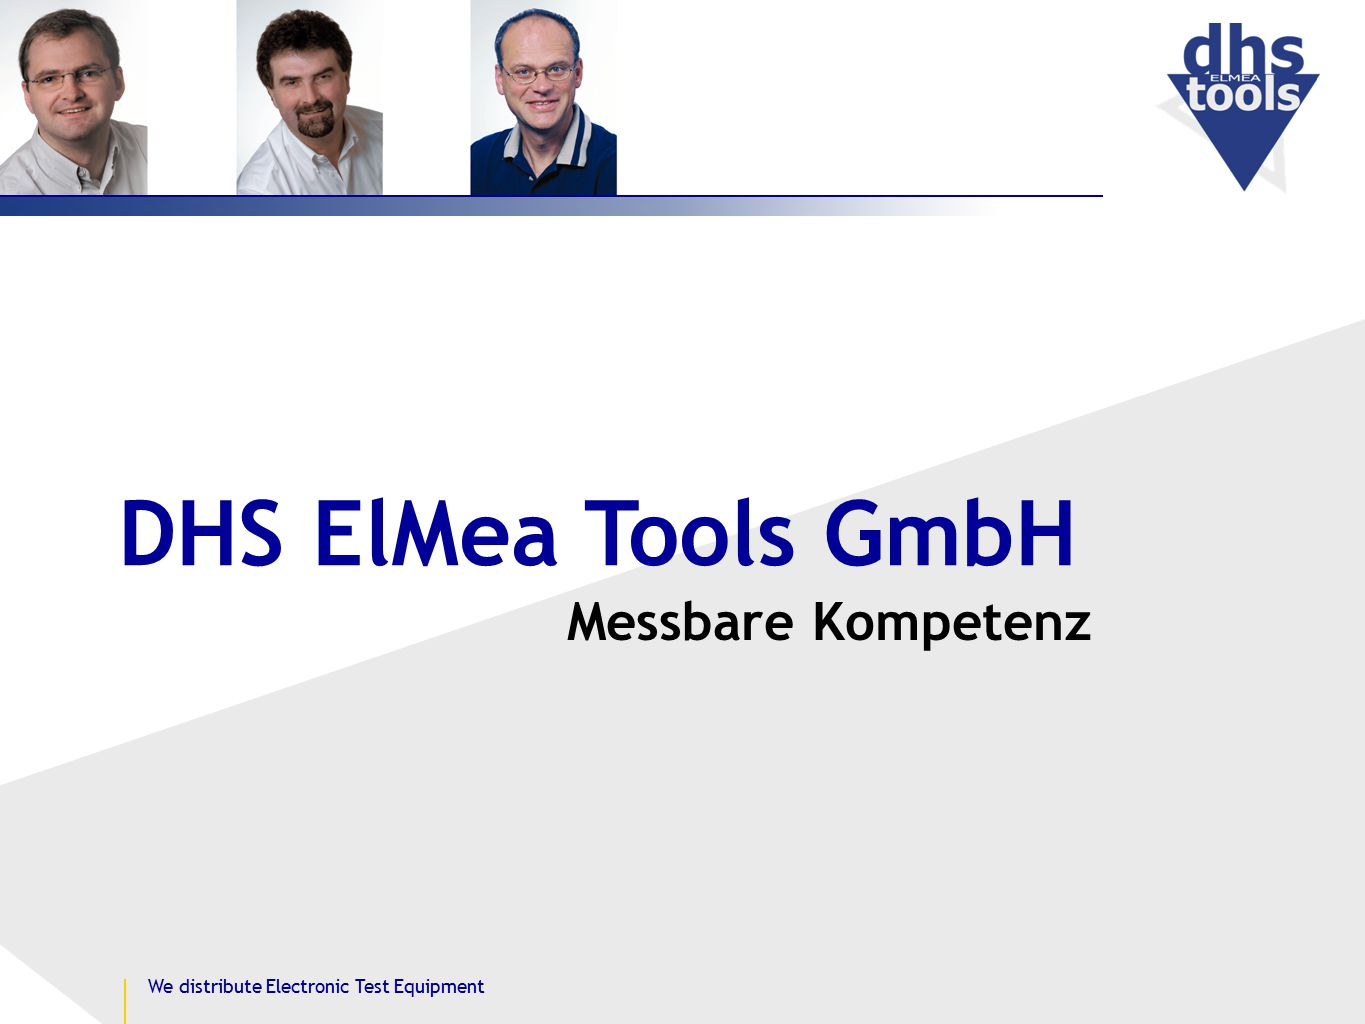 Messbare Kompetenz DHS ElMea Tools GmbH We distribute Electronic Test Equipment